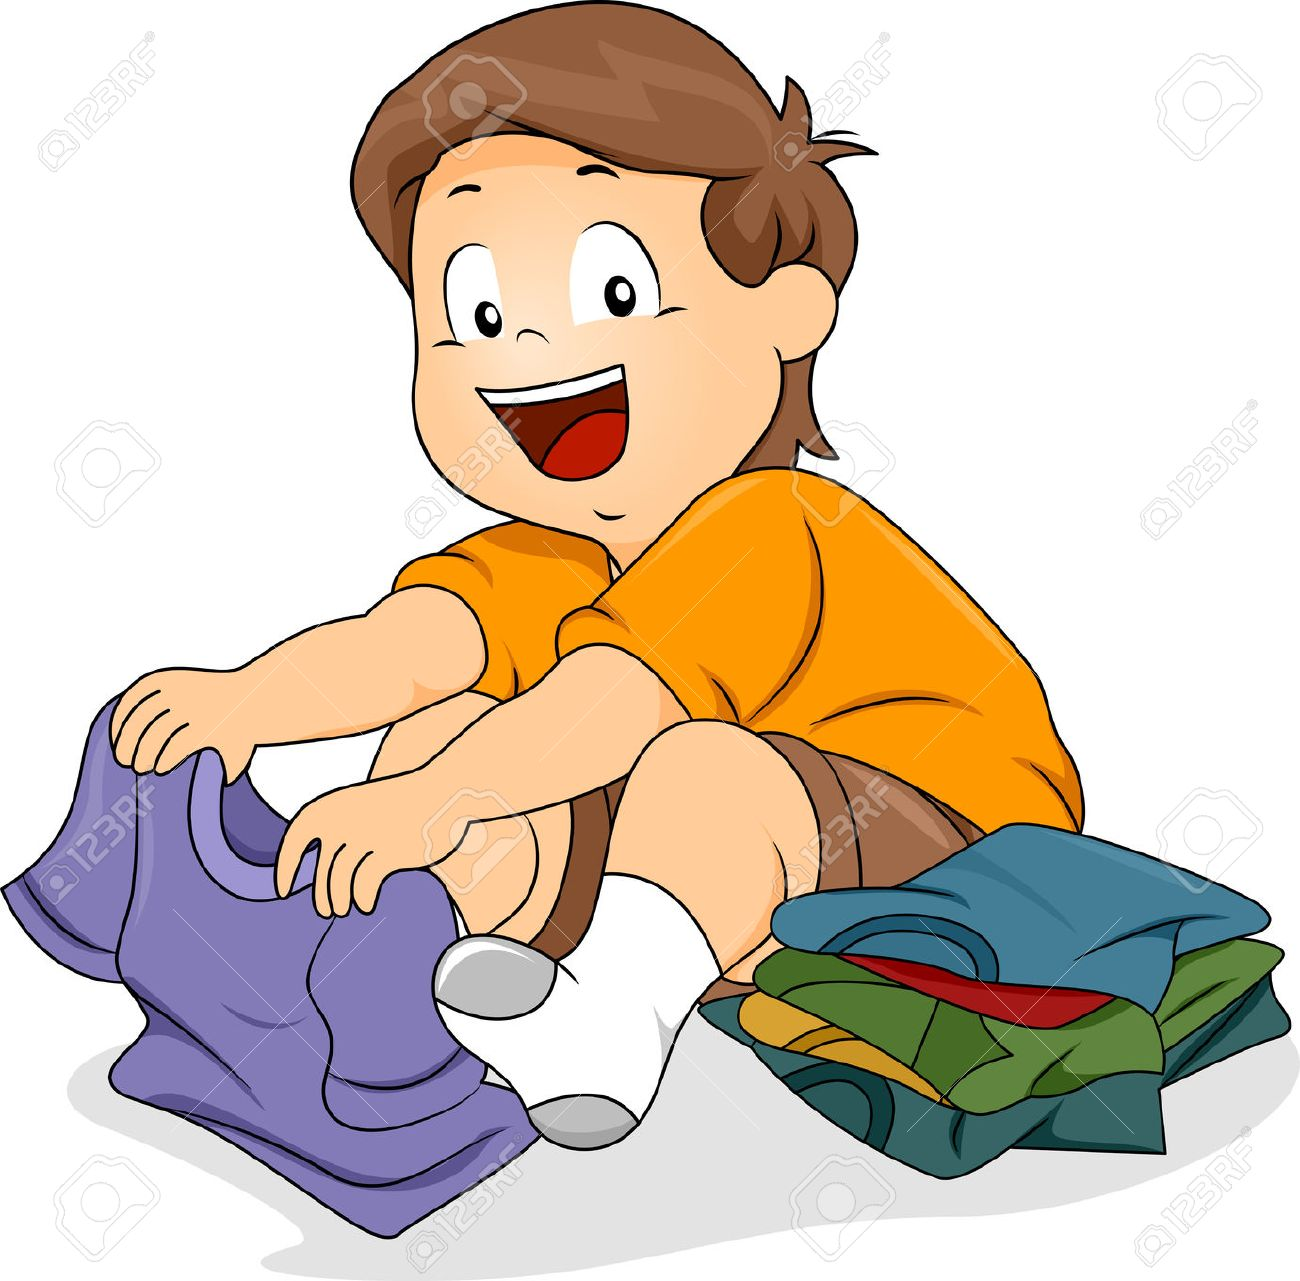 Folding clothes clipart 4 » Clipart Station.